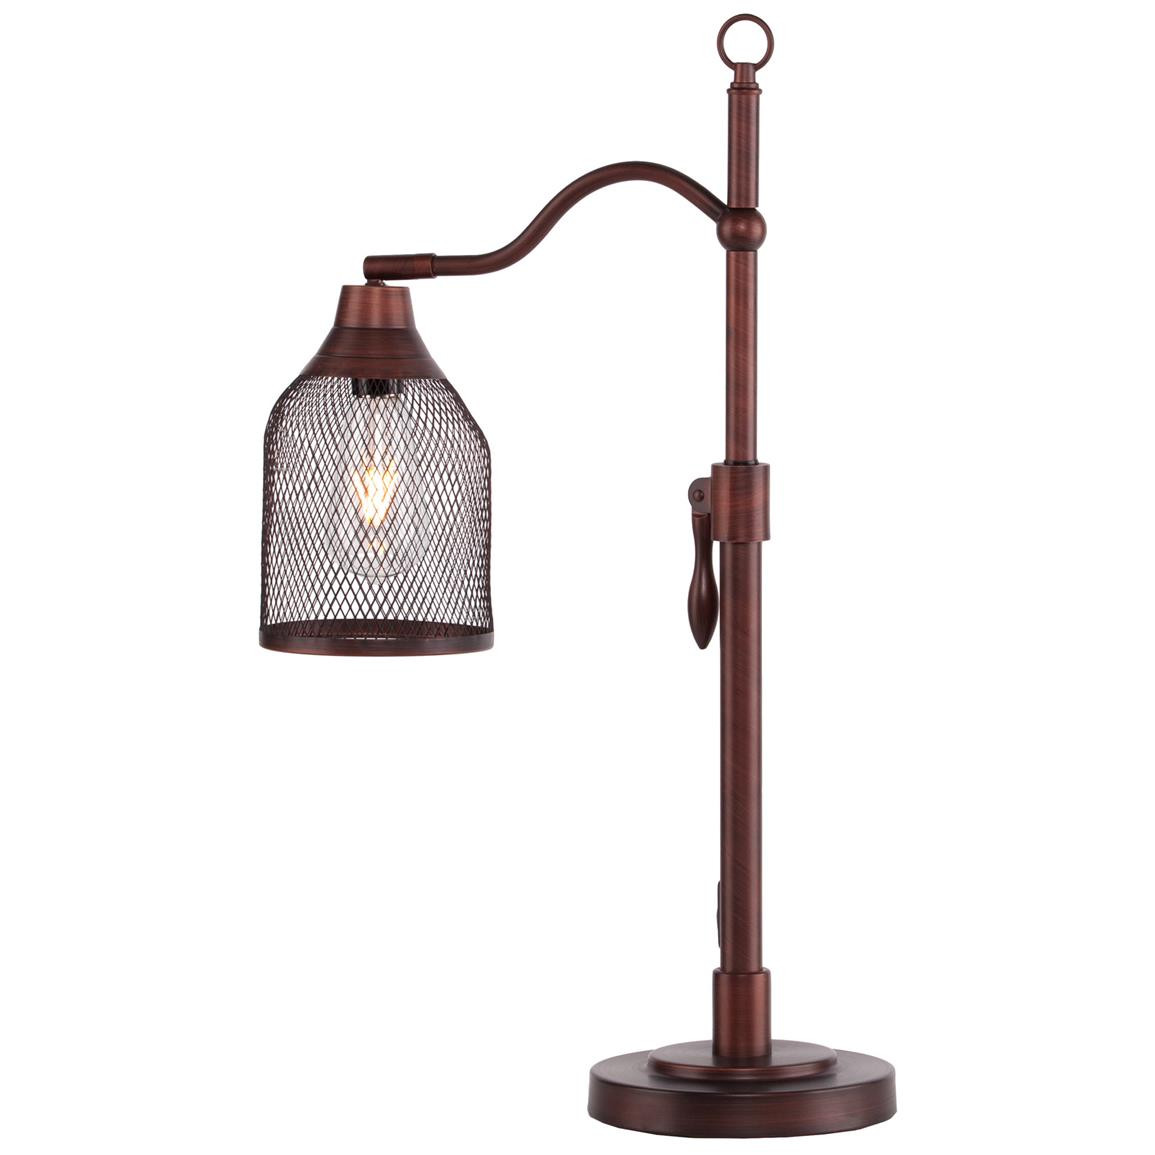 Best ideas about Edison Desk Lamp . Save or Pin Rigby Table Lamp Edison Bulb Lighting at Now.